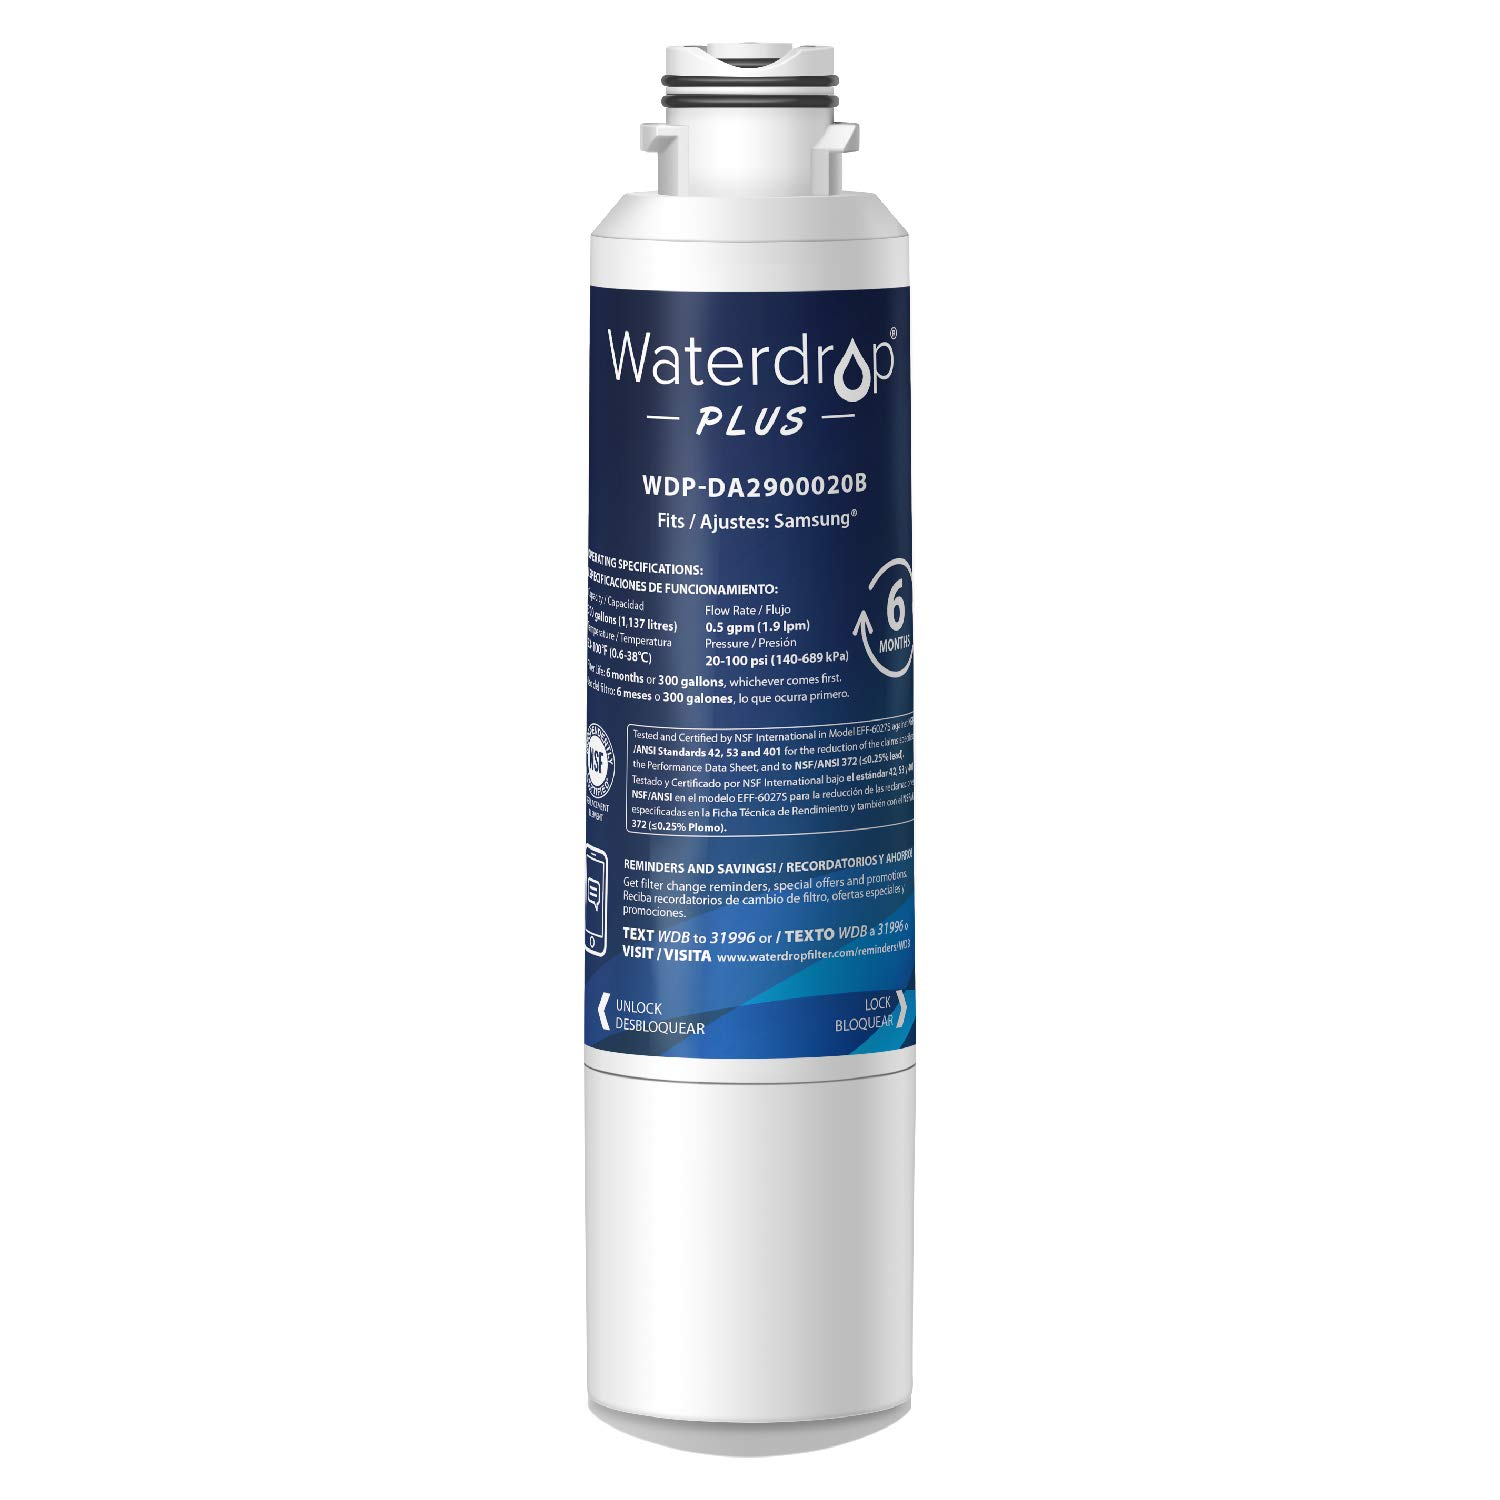 Waterdrop Plus DA29-00020B Refrigerator Water Filter, Compatible with Samsung DA29-00020B, DA29-00020A, HAF-CIN/EXP, 46-9101, Reduces Lead, Chlorine, Cyst, Benzene and More, NSF 401&53&42 Certified